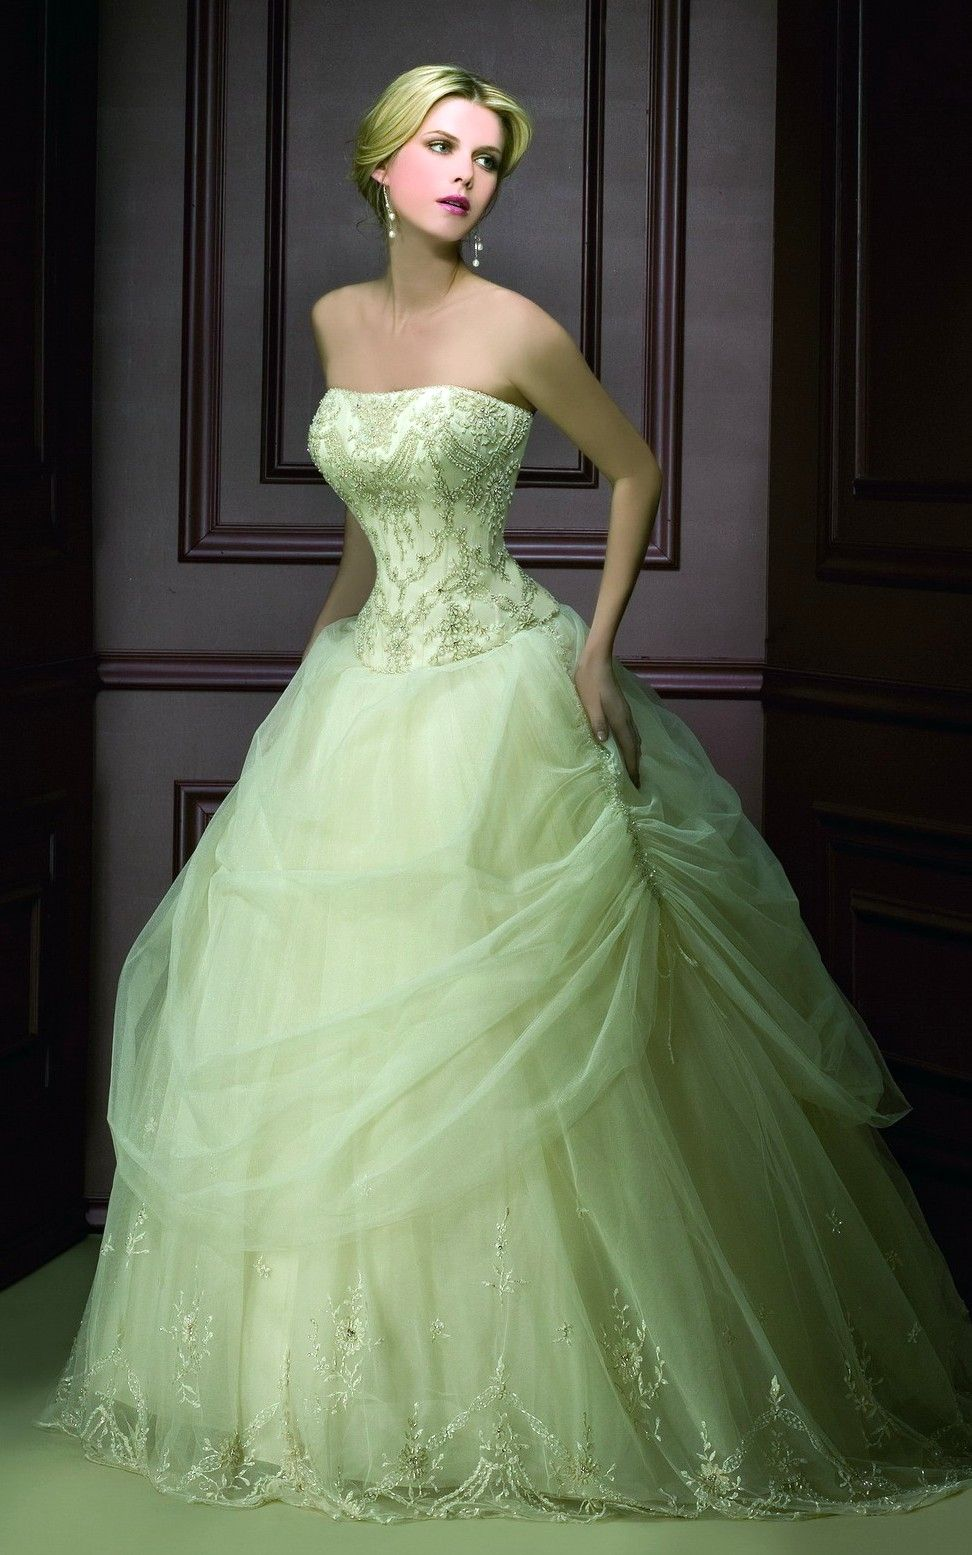 Beautiful! ~ Beautiful Unique Ball Gowns, couture, wedding, bridal, bride, dress, fantasy, flowers, flower, floral, flora, fairytale, fashion, designer, beautiful, stunning, prom dress, ball gown, Cinderella, Princess, satin, lace, velvet, bodice, vintage, Marie Antoinette, fashion, dress, dresses, elegant, sweetheart, corset,